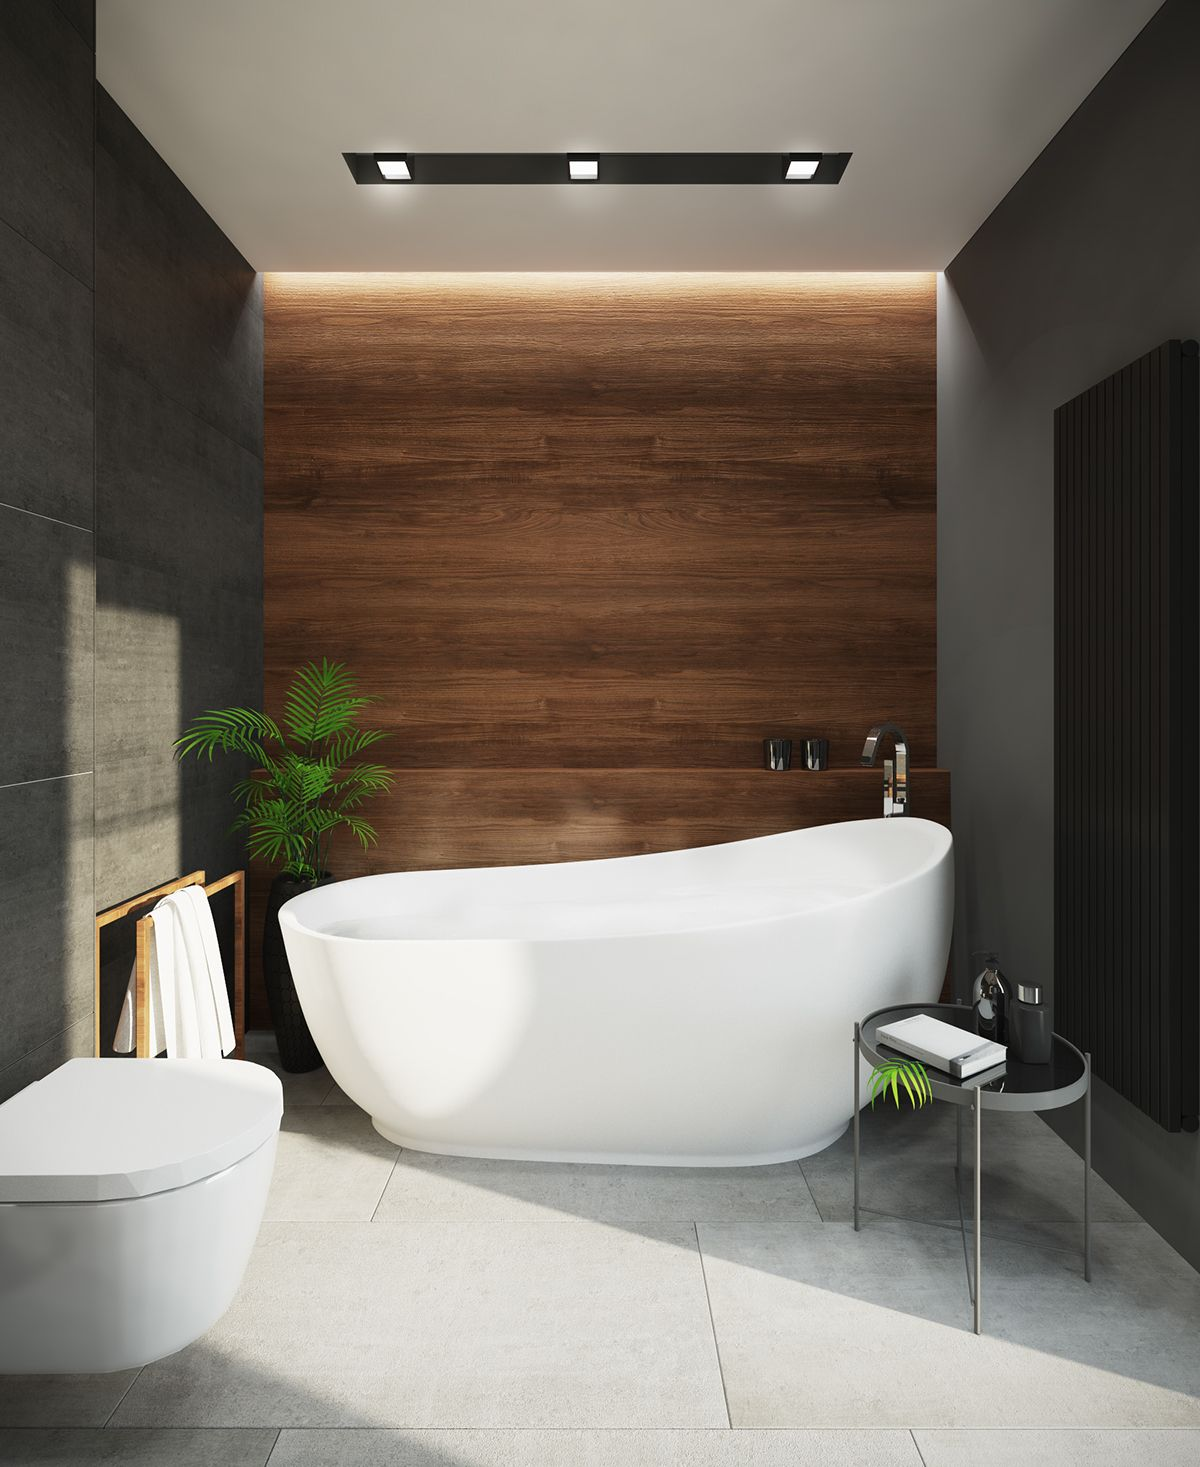 bathroom, grey floor tiles, grey wall tiles, wooden accent wall, white tub, white toilet, side table